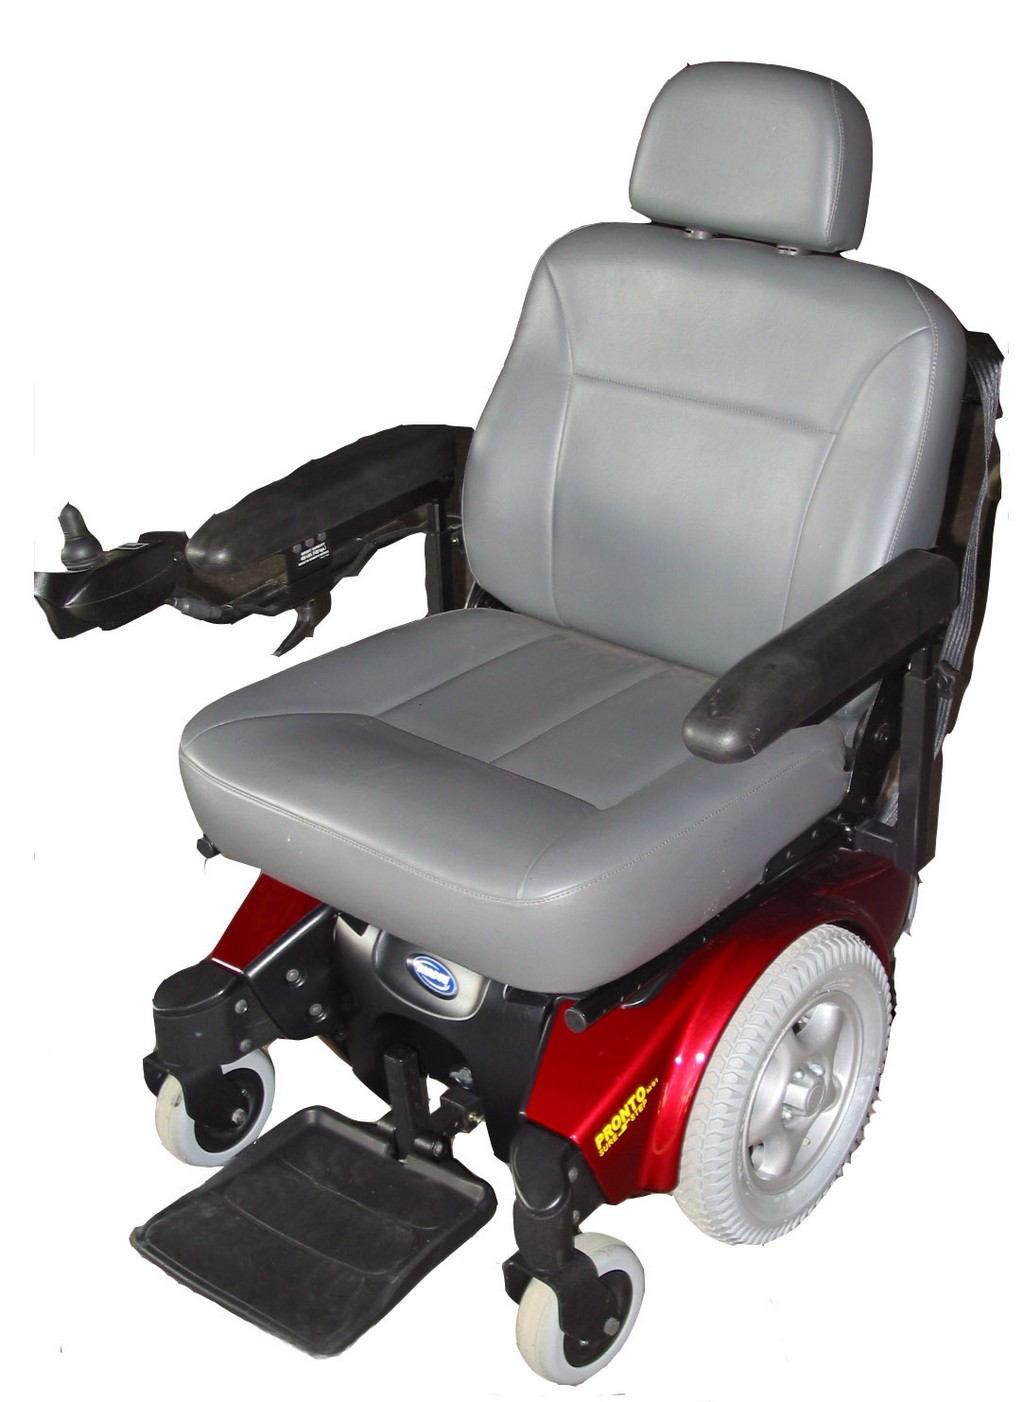 operating instrs quickie electric wheel chair, electric wheel chair motor, gogo electric wheel chair, bruno electric wheelchair buy